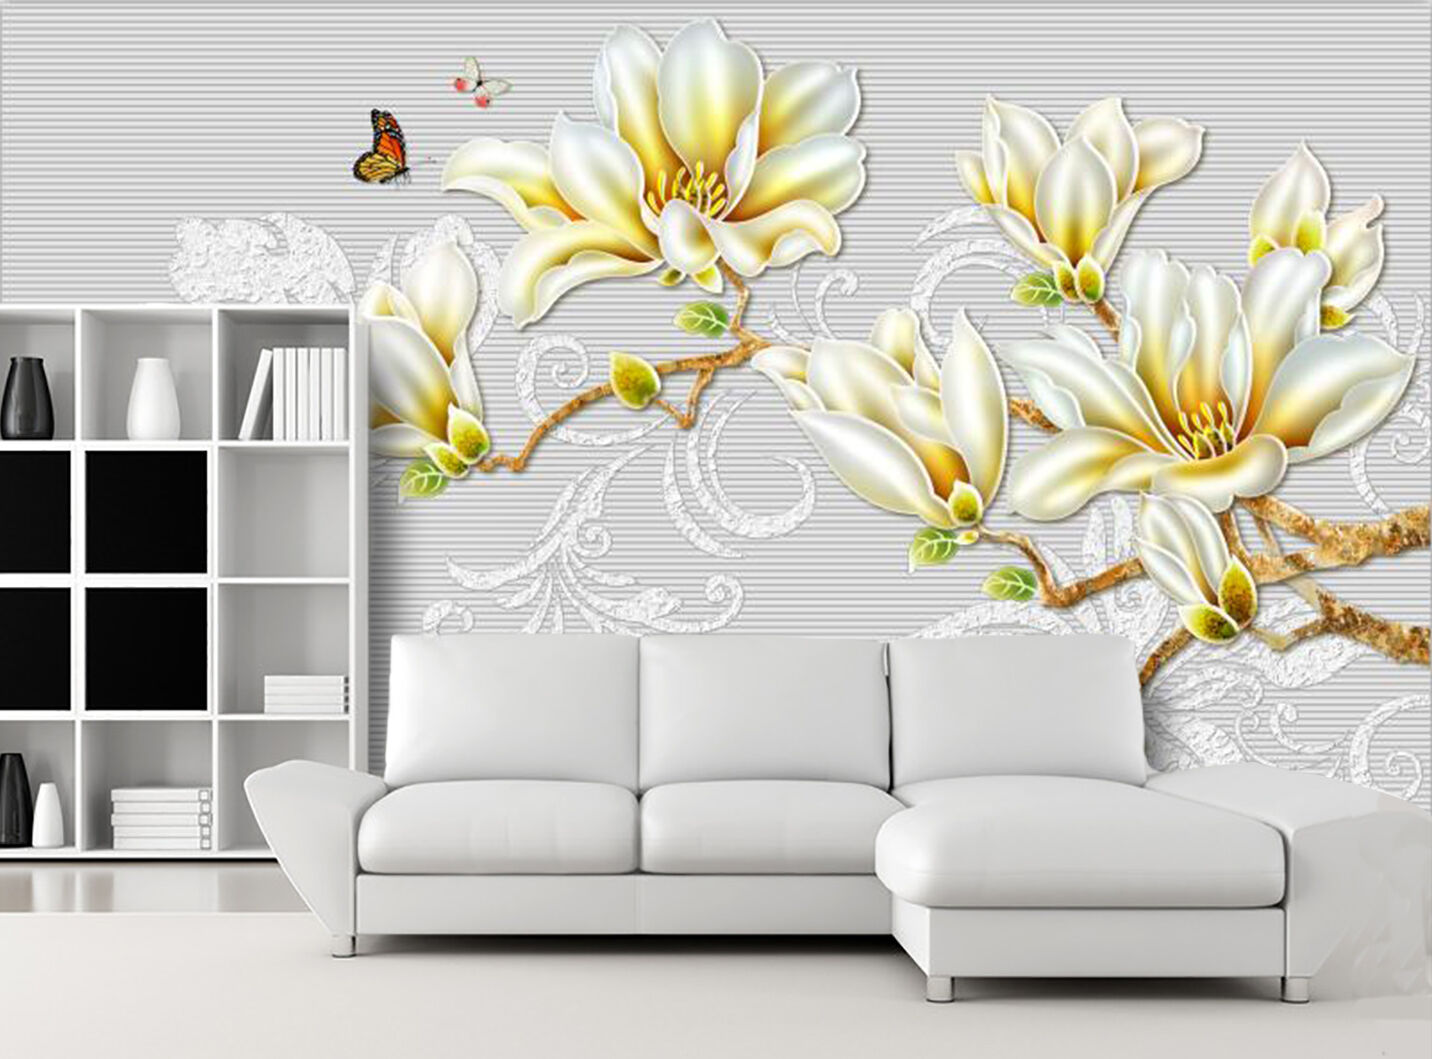 3D Pretty Flower Butterfly 316 Wall Paper Wall Print Decal Wall AJ WALLPAPER CA